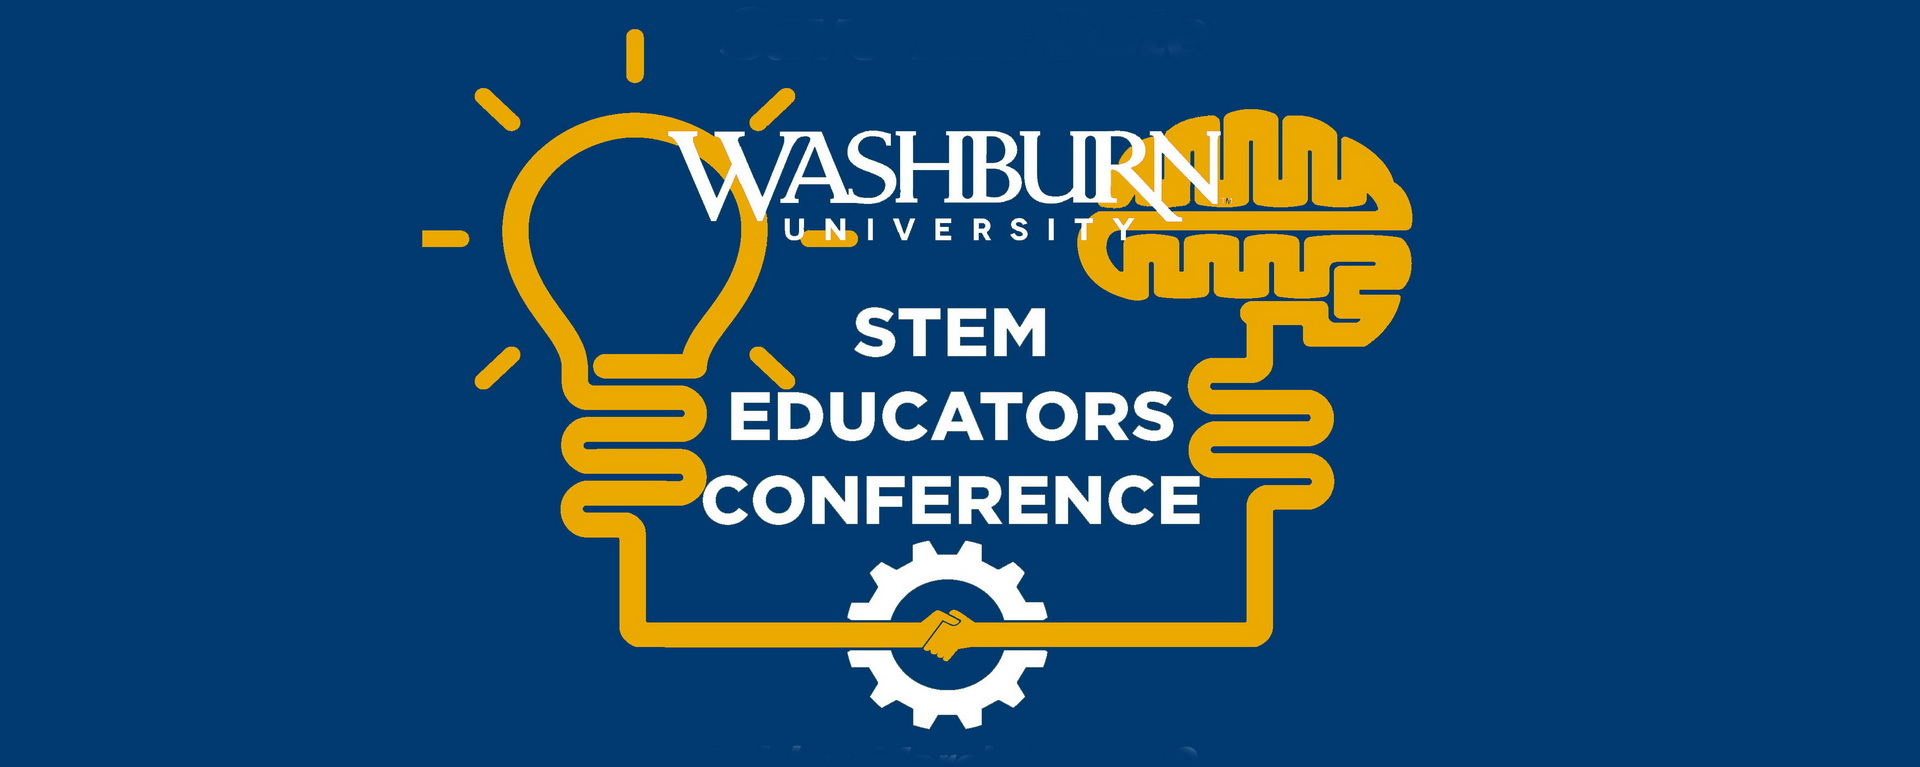 Stem Educators Conference 2019